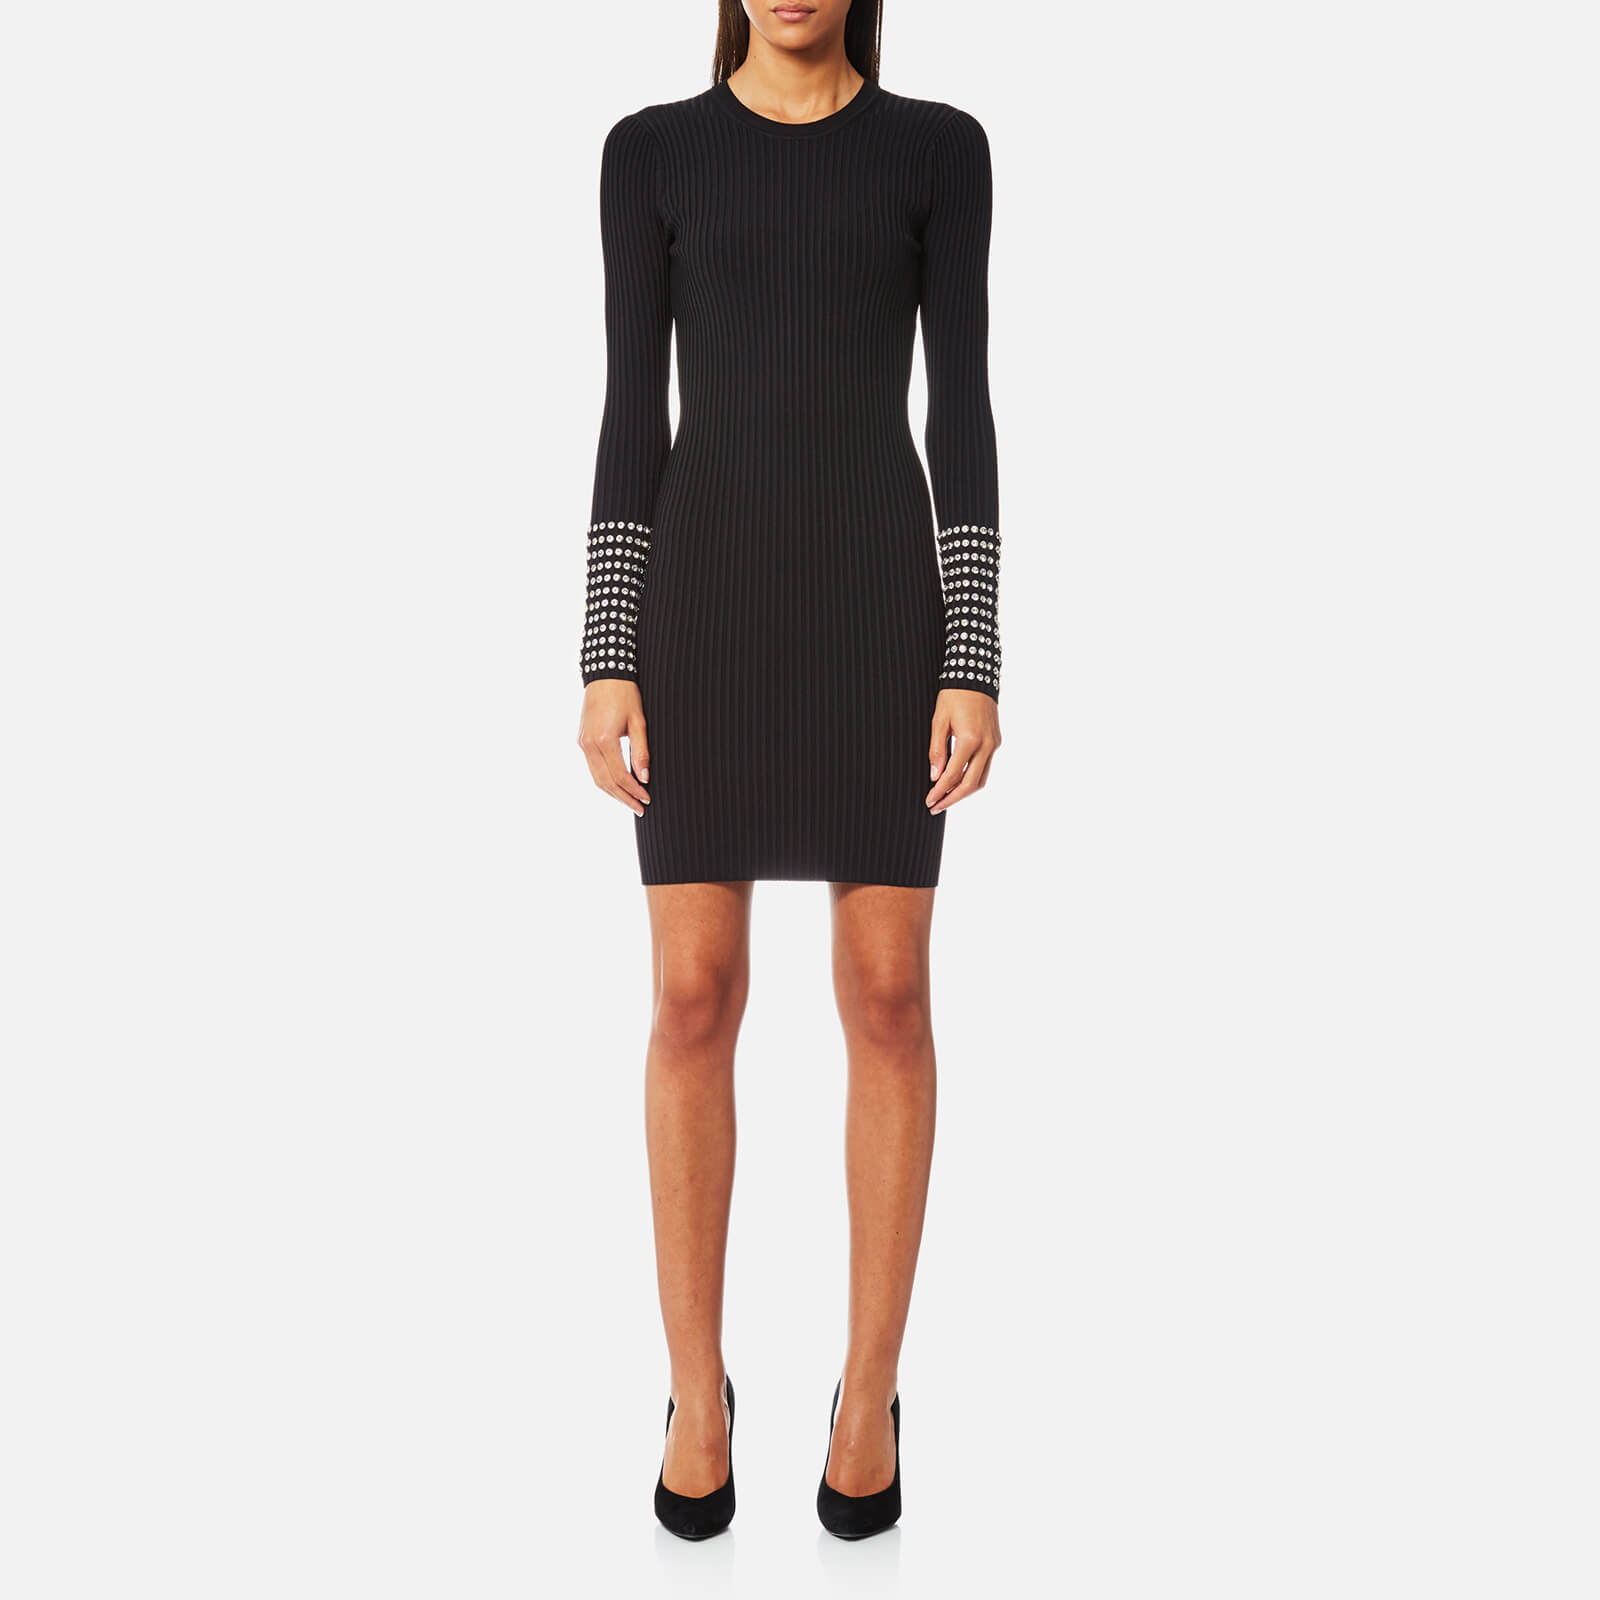 f862c0f893568 Alexander Wang Women's Long Sleeve Dress with Crystal Cuff Detail - Black -  Free UK Delivery over £50